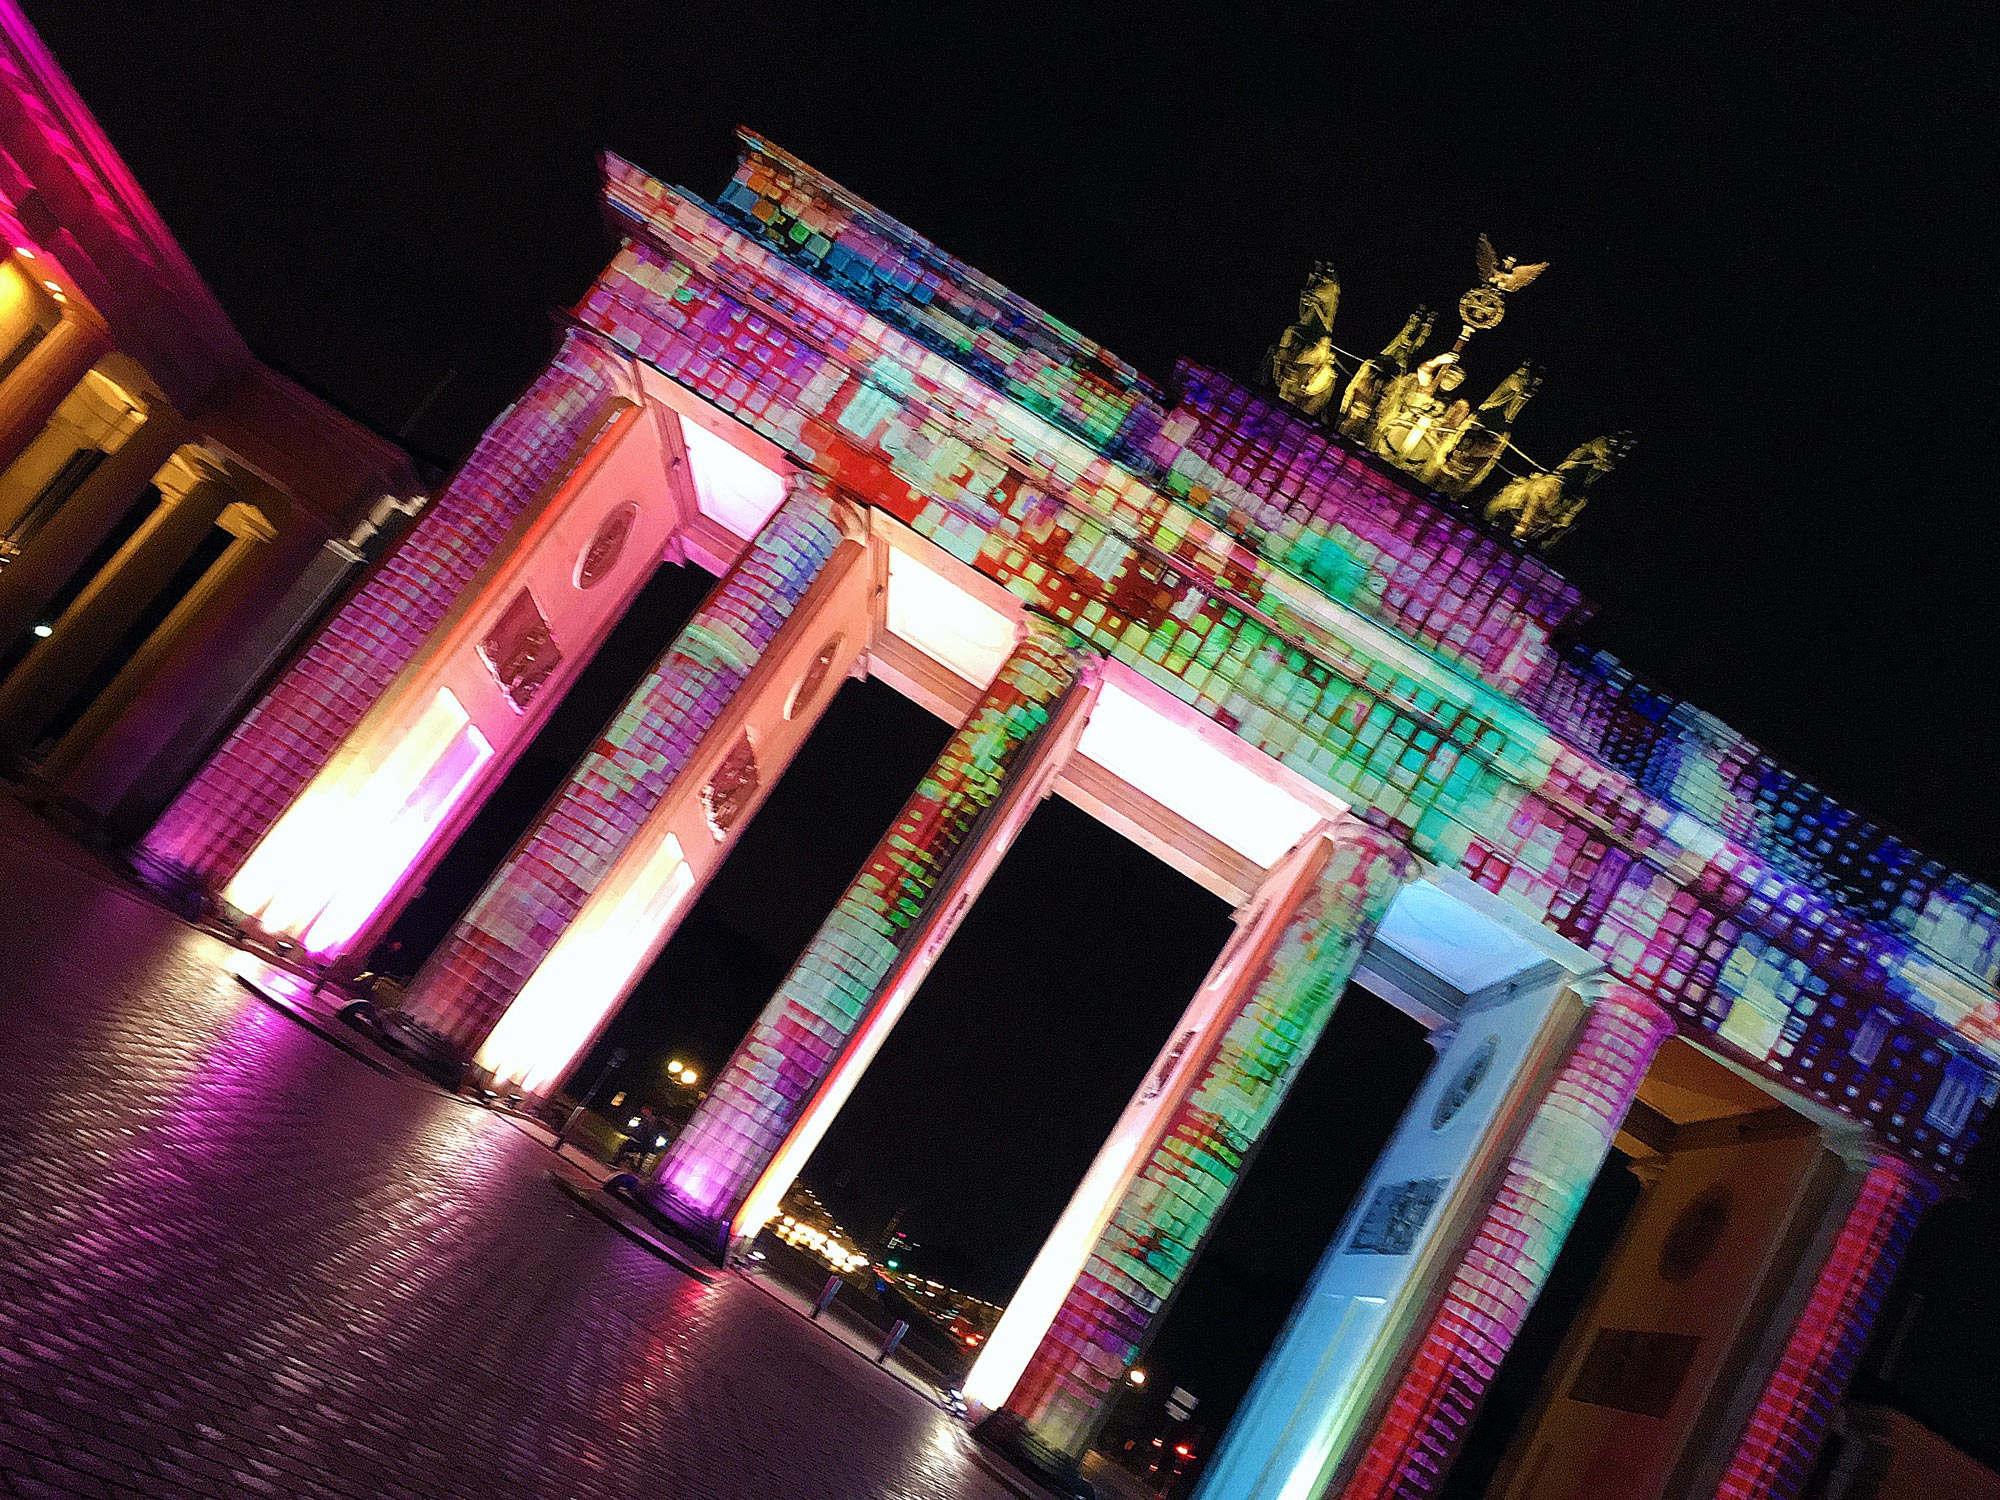 Festival of Lights: Brandenburger Tor